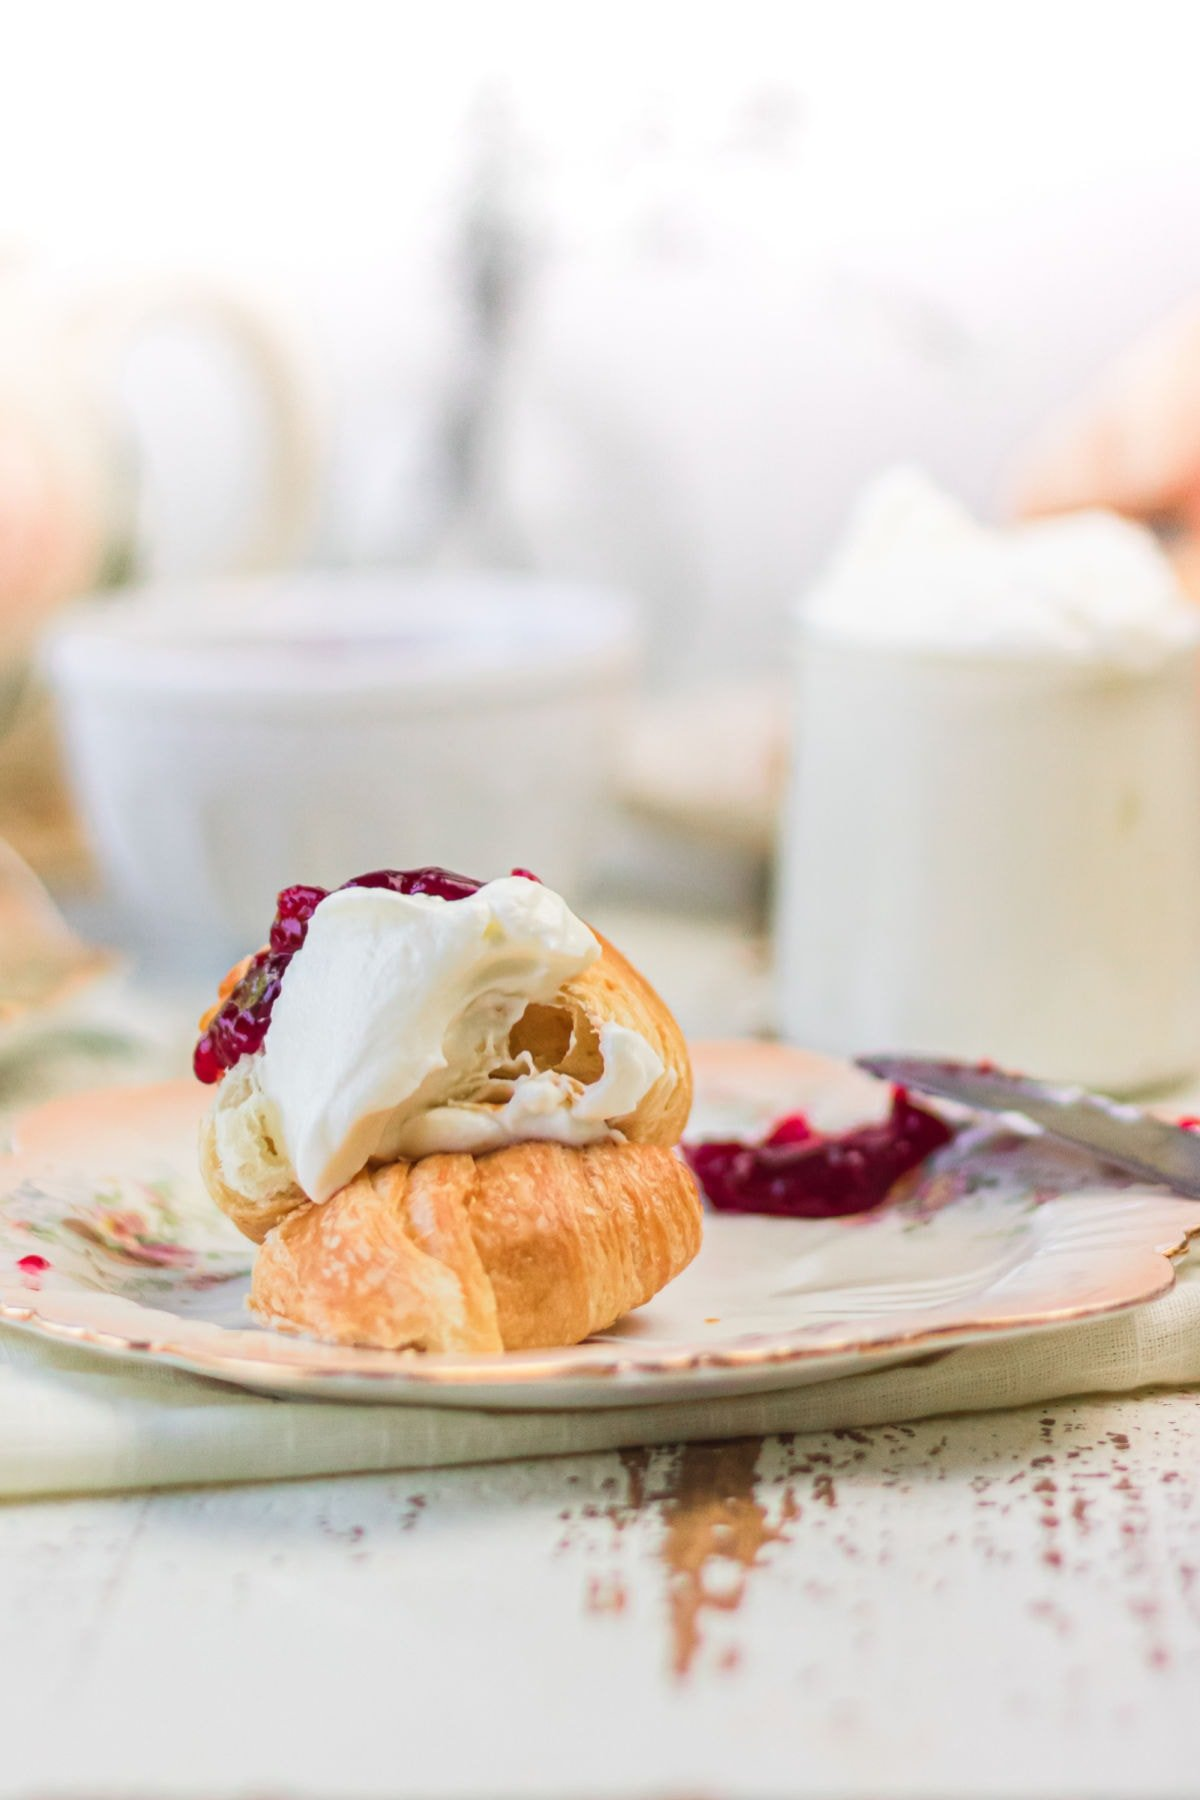 A croissant with jam and Devonshire cream spread on it.